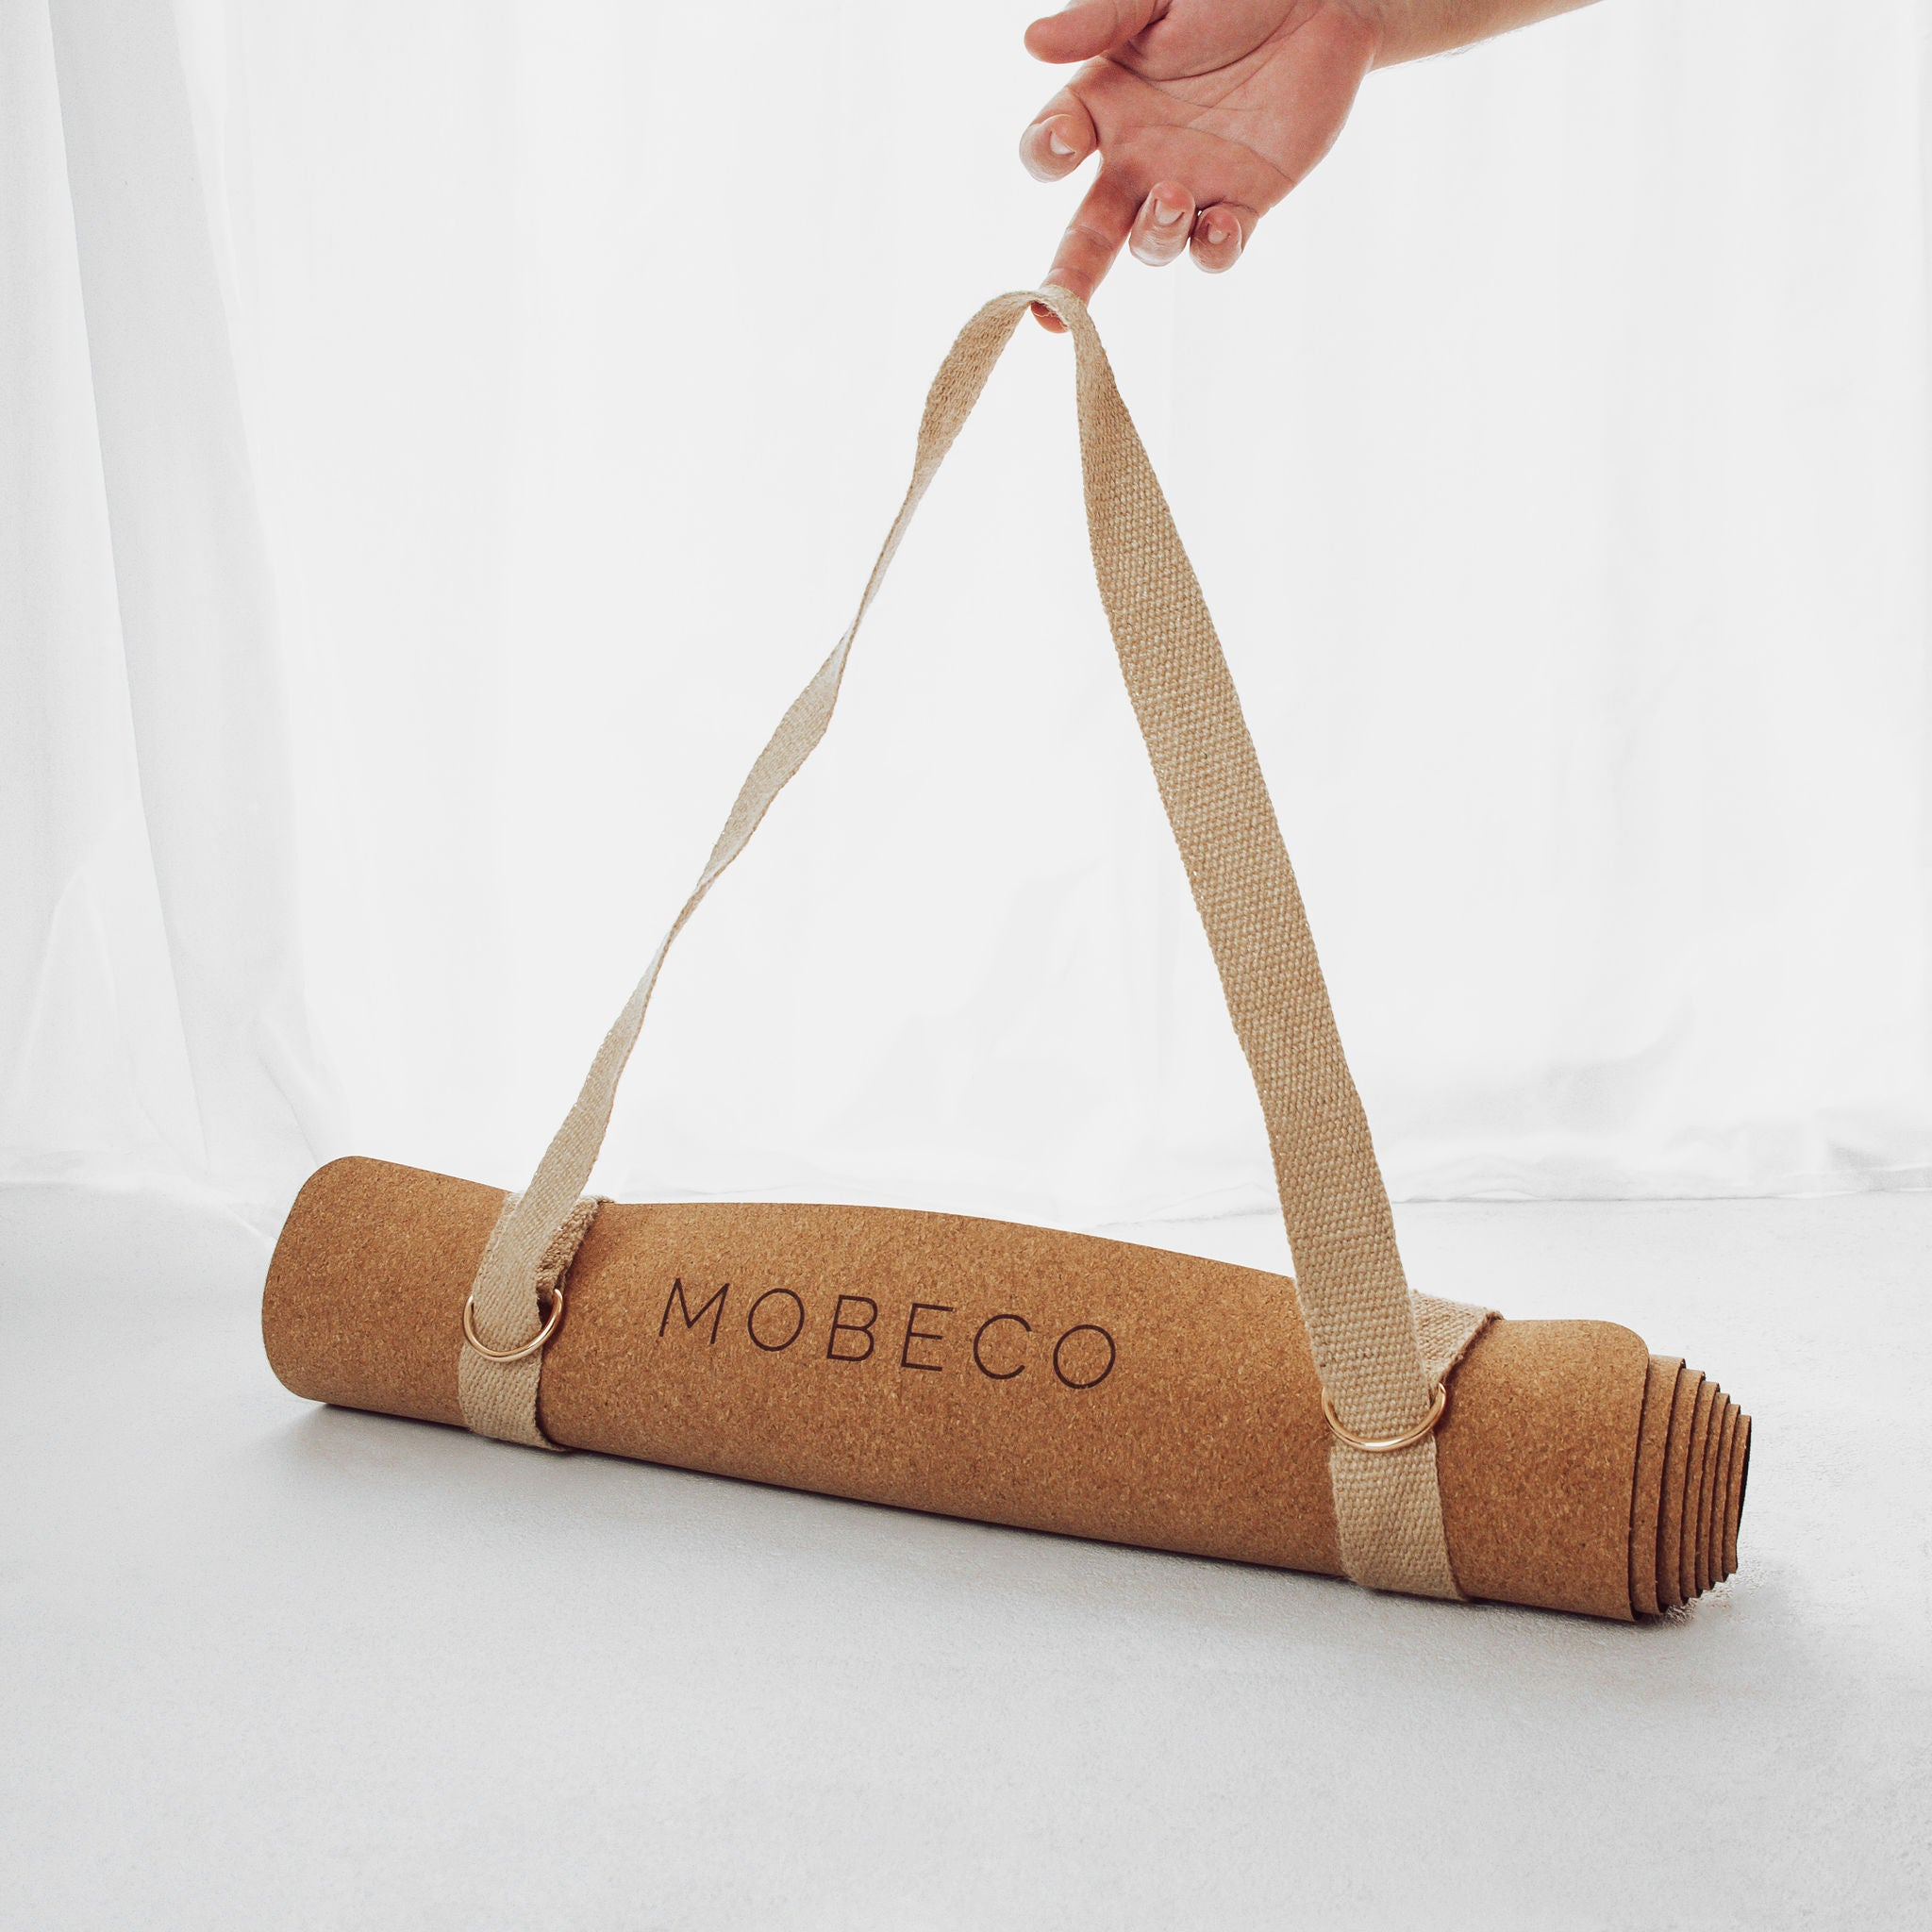 Toitū Natural Cork Yoga Mat, made by MOBECO